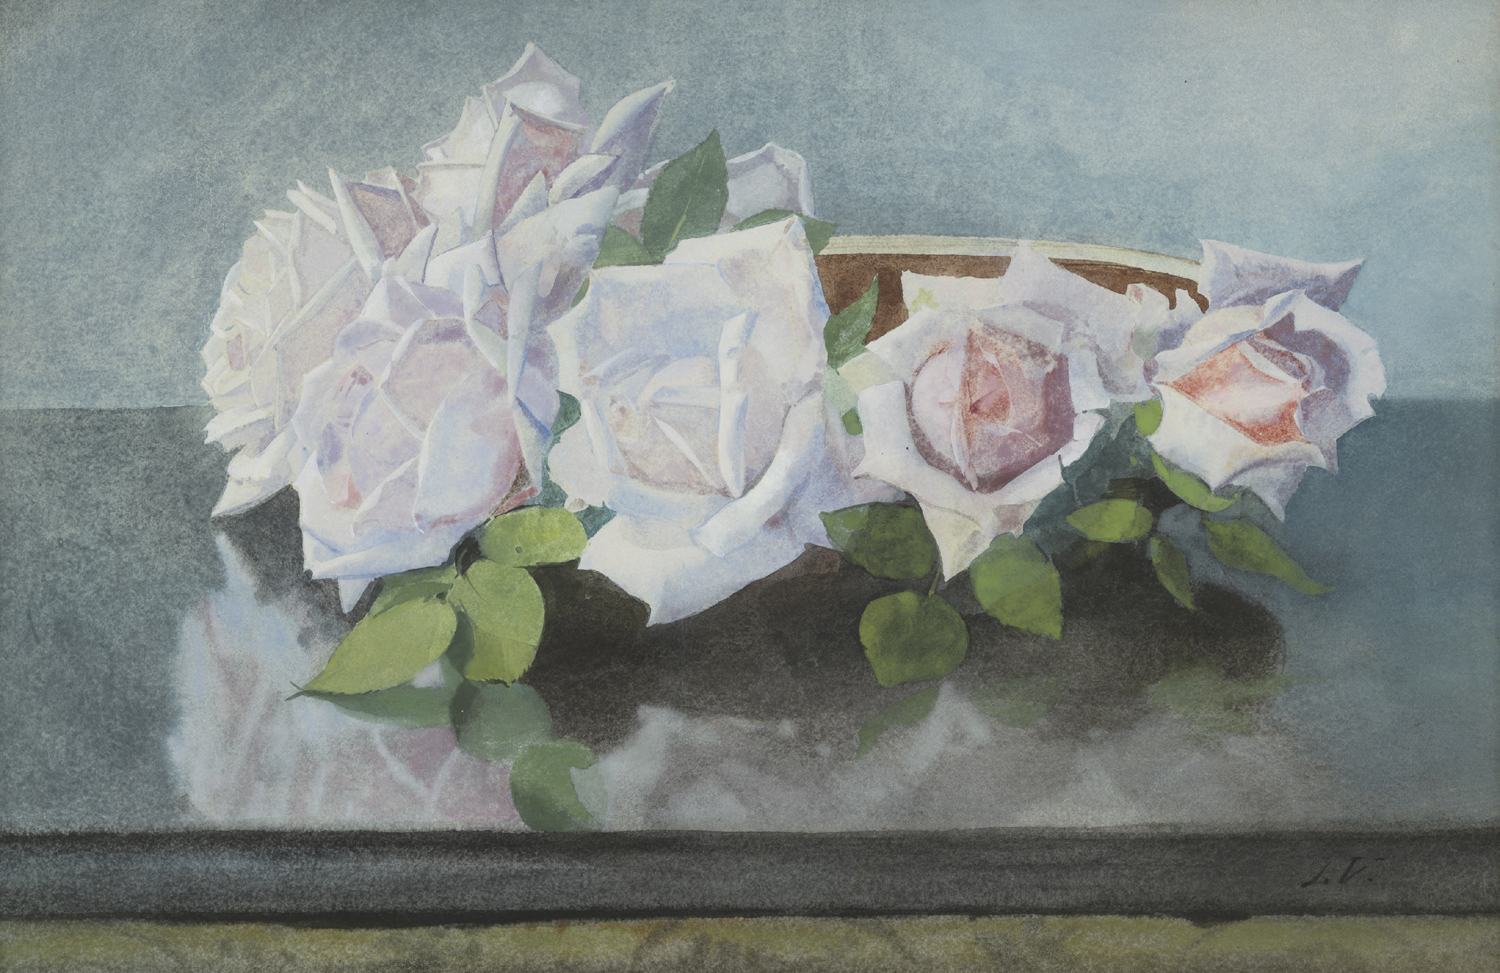 Jan Voerman Sr. | 'La France' roses in a bowl | Kunsthandel Bies | Bies Gallery